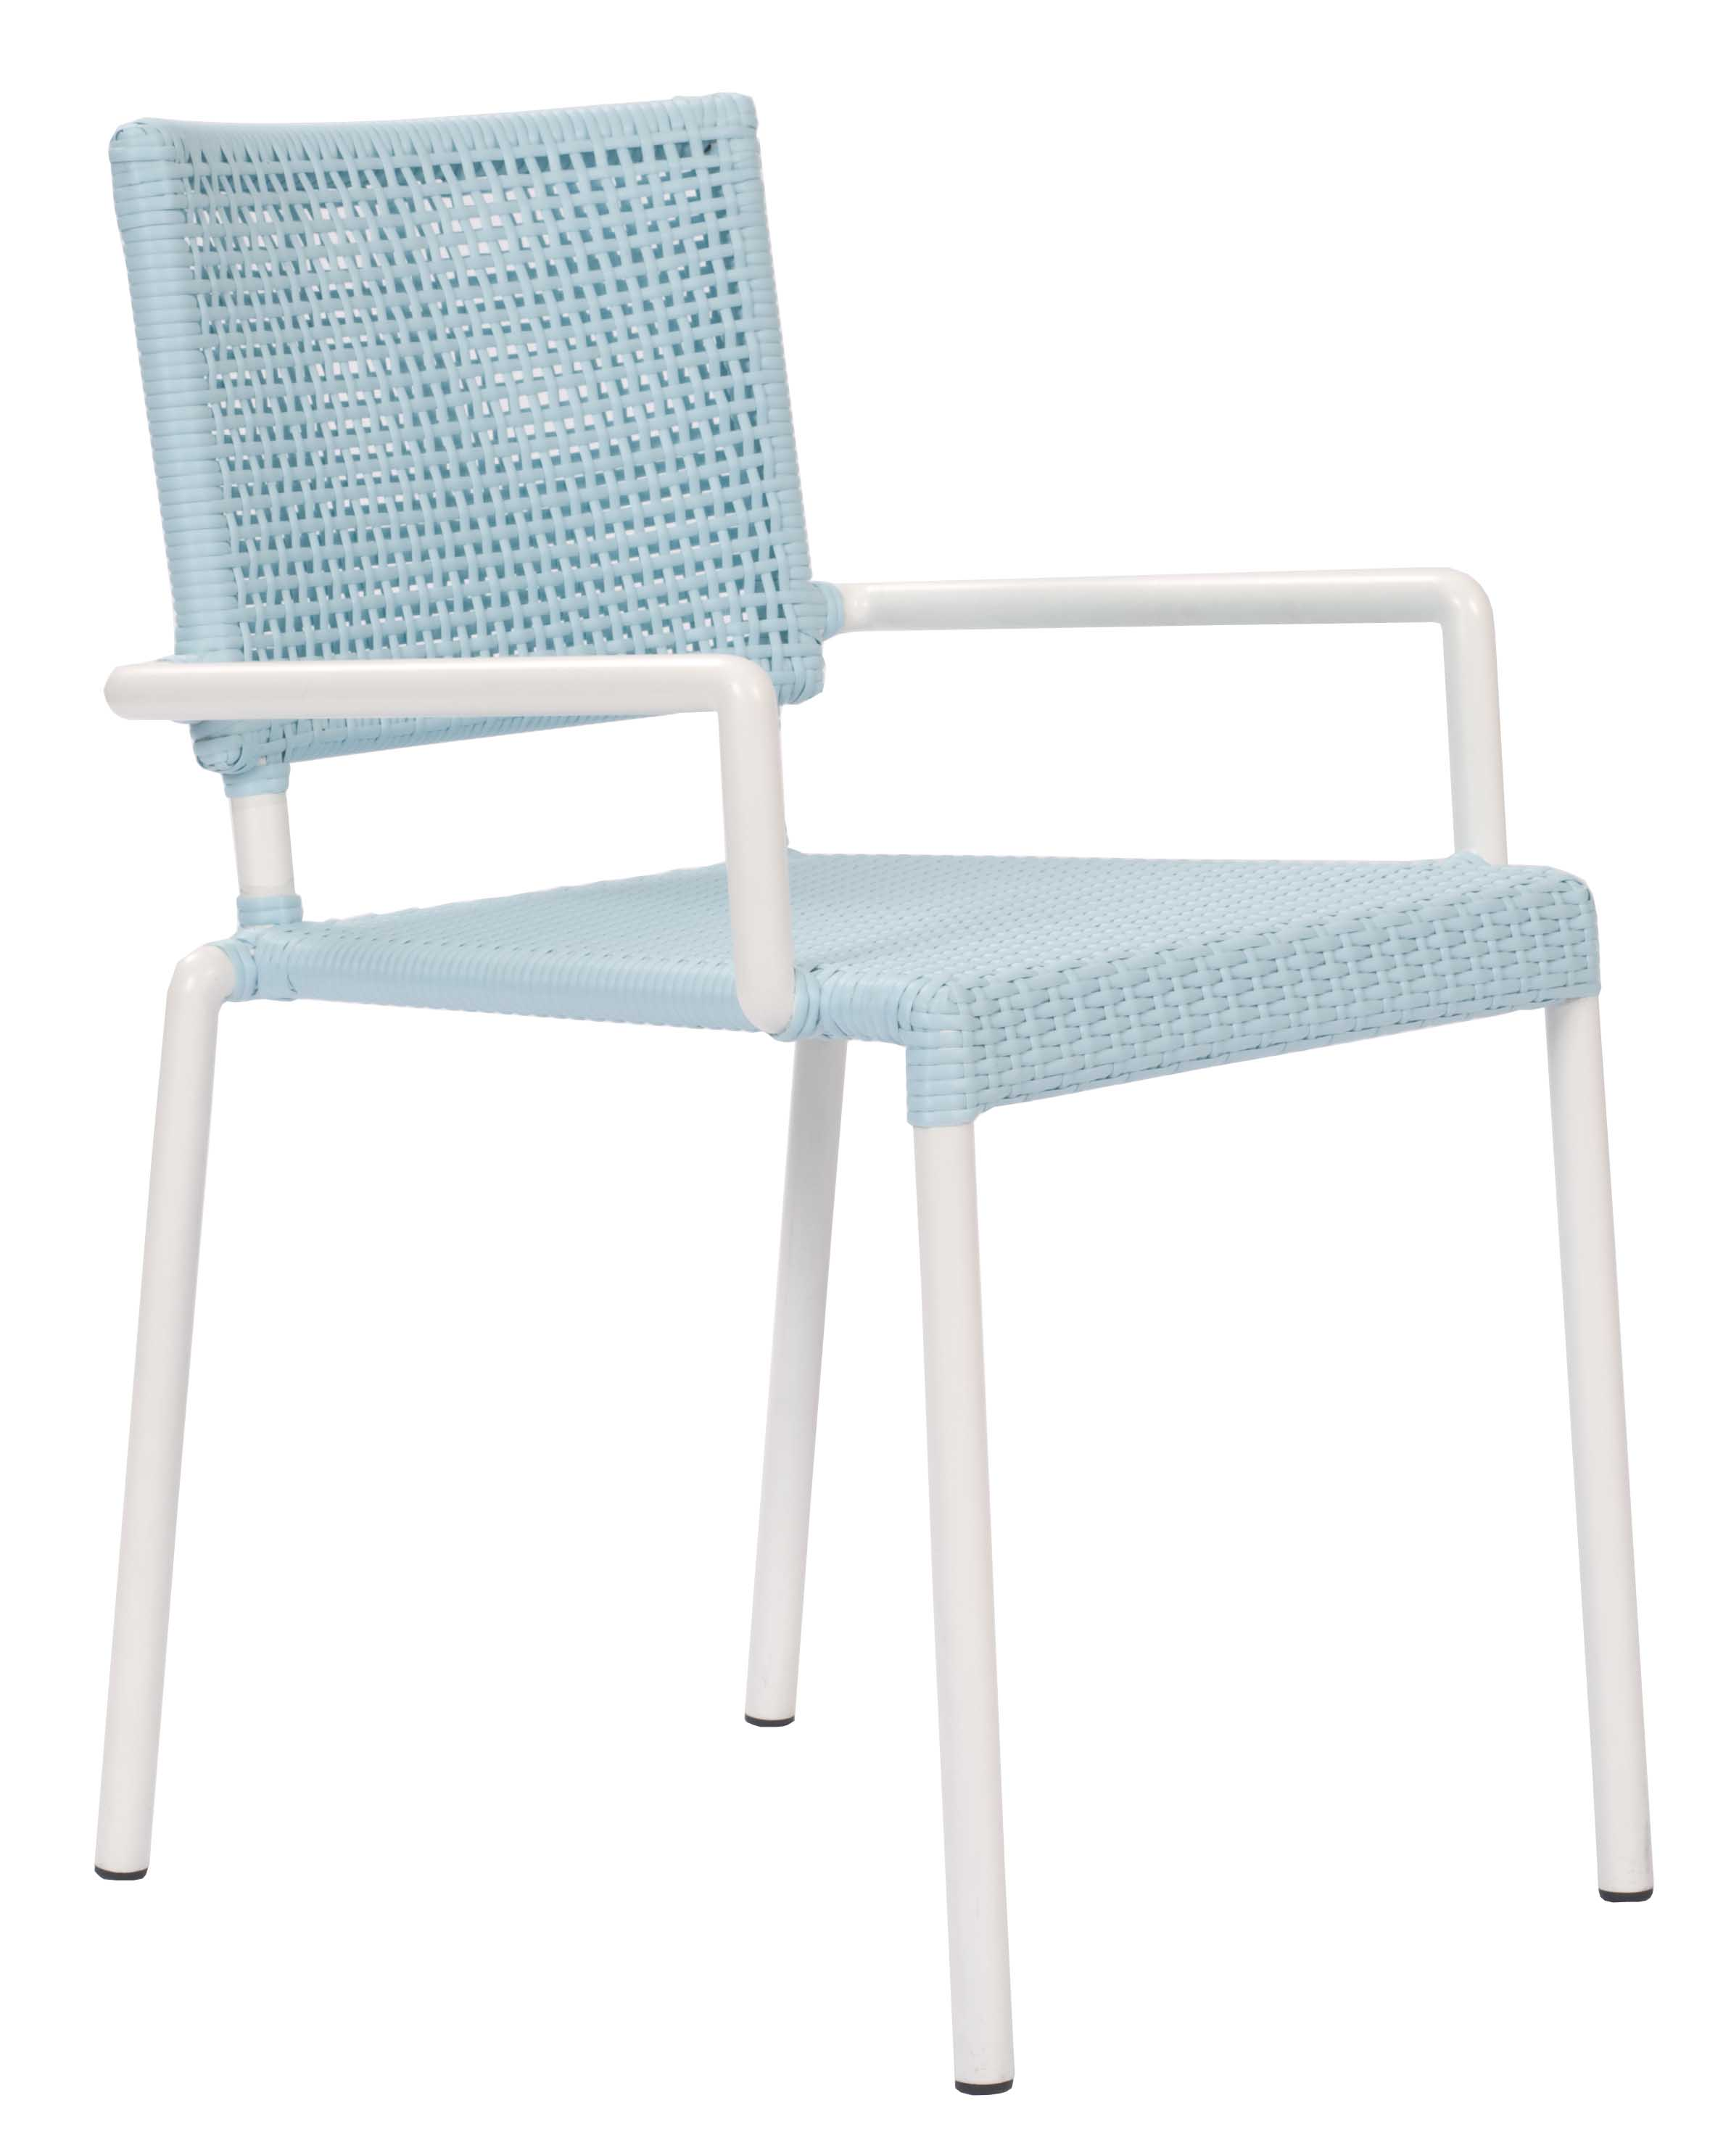 Lido Outdoor Dining Chair with Arms Blue & White